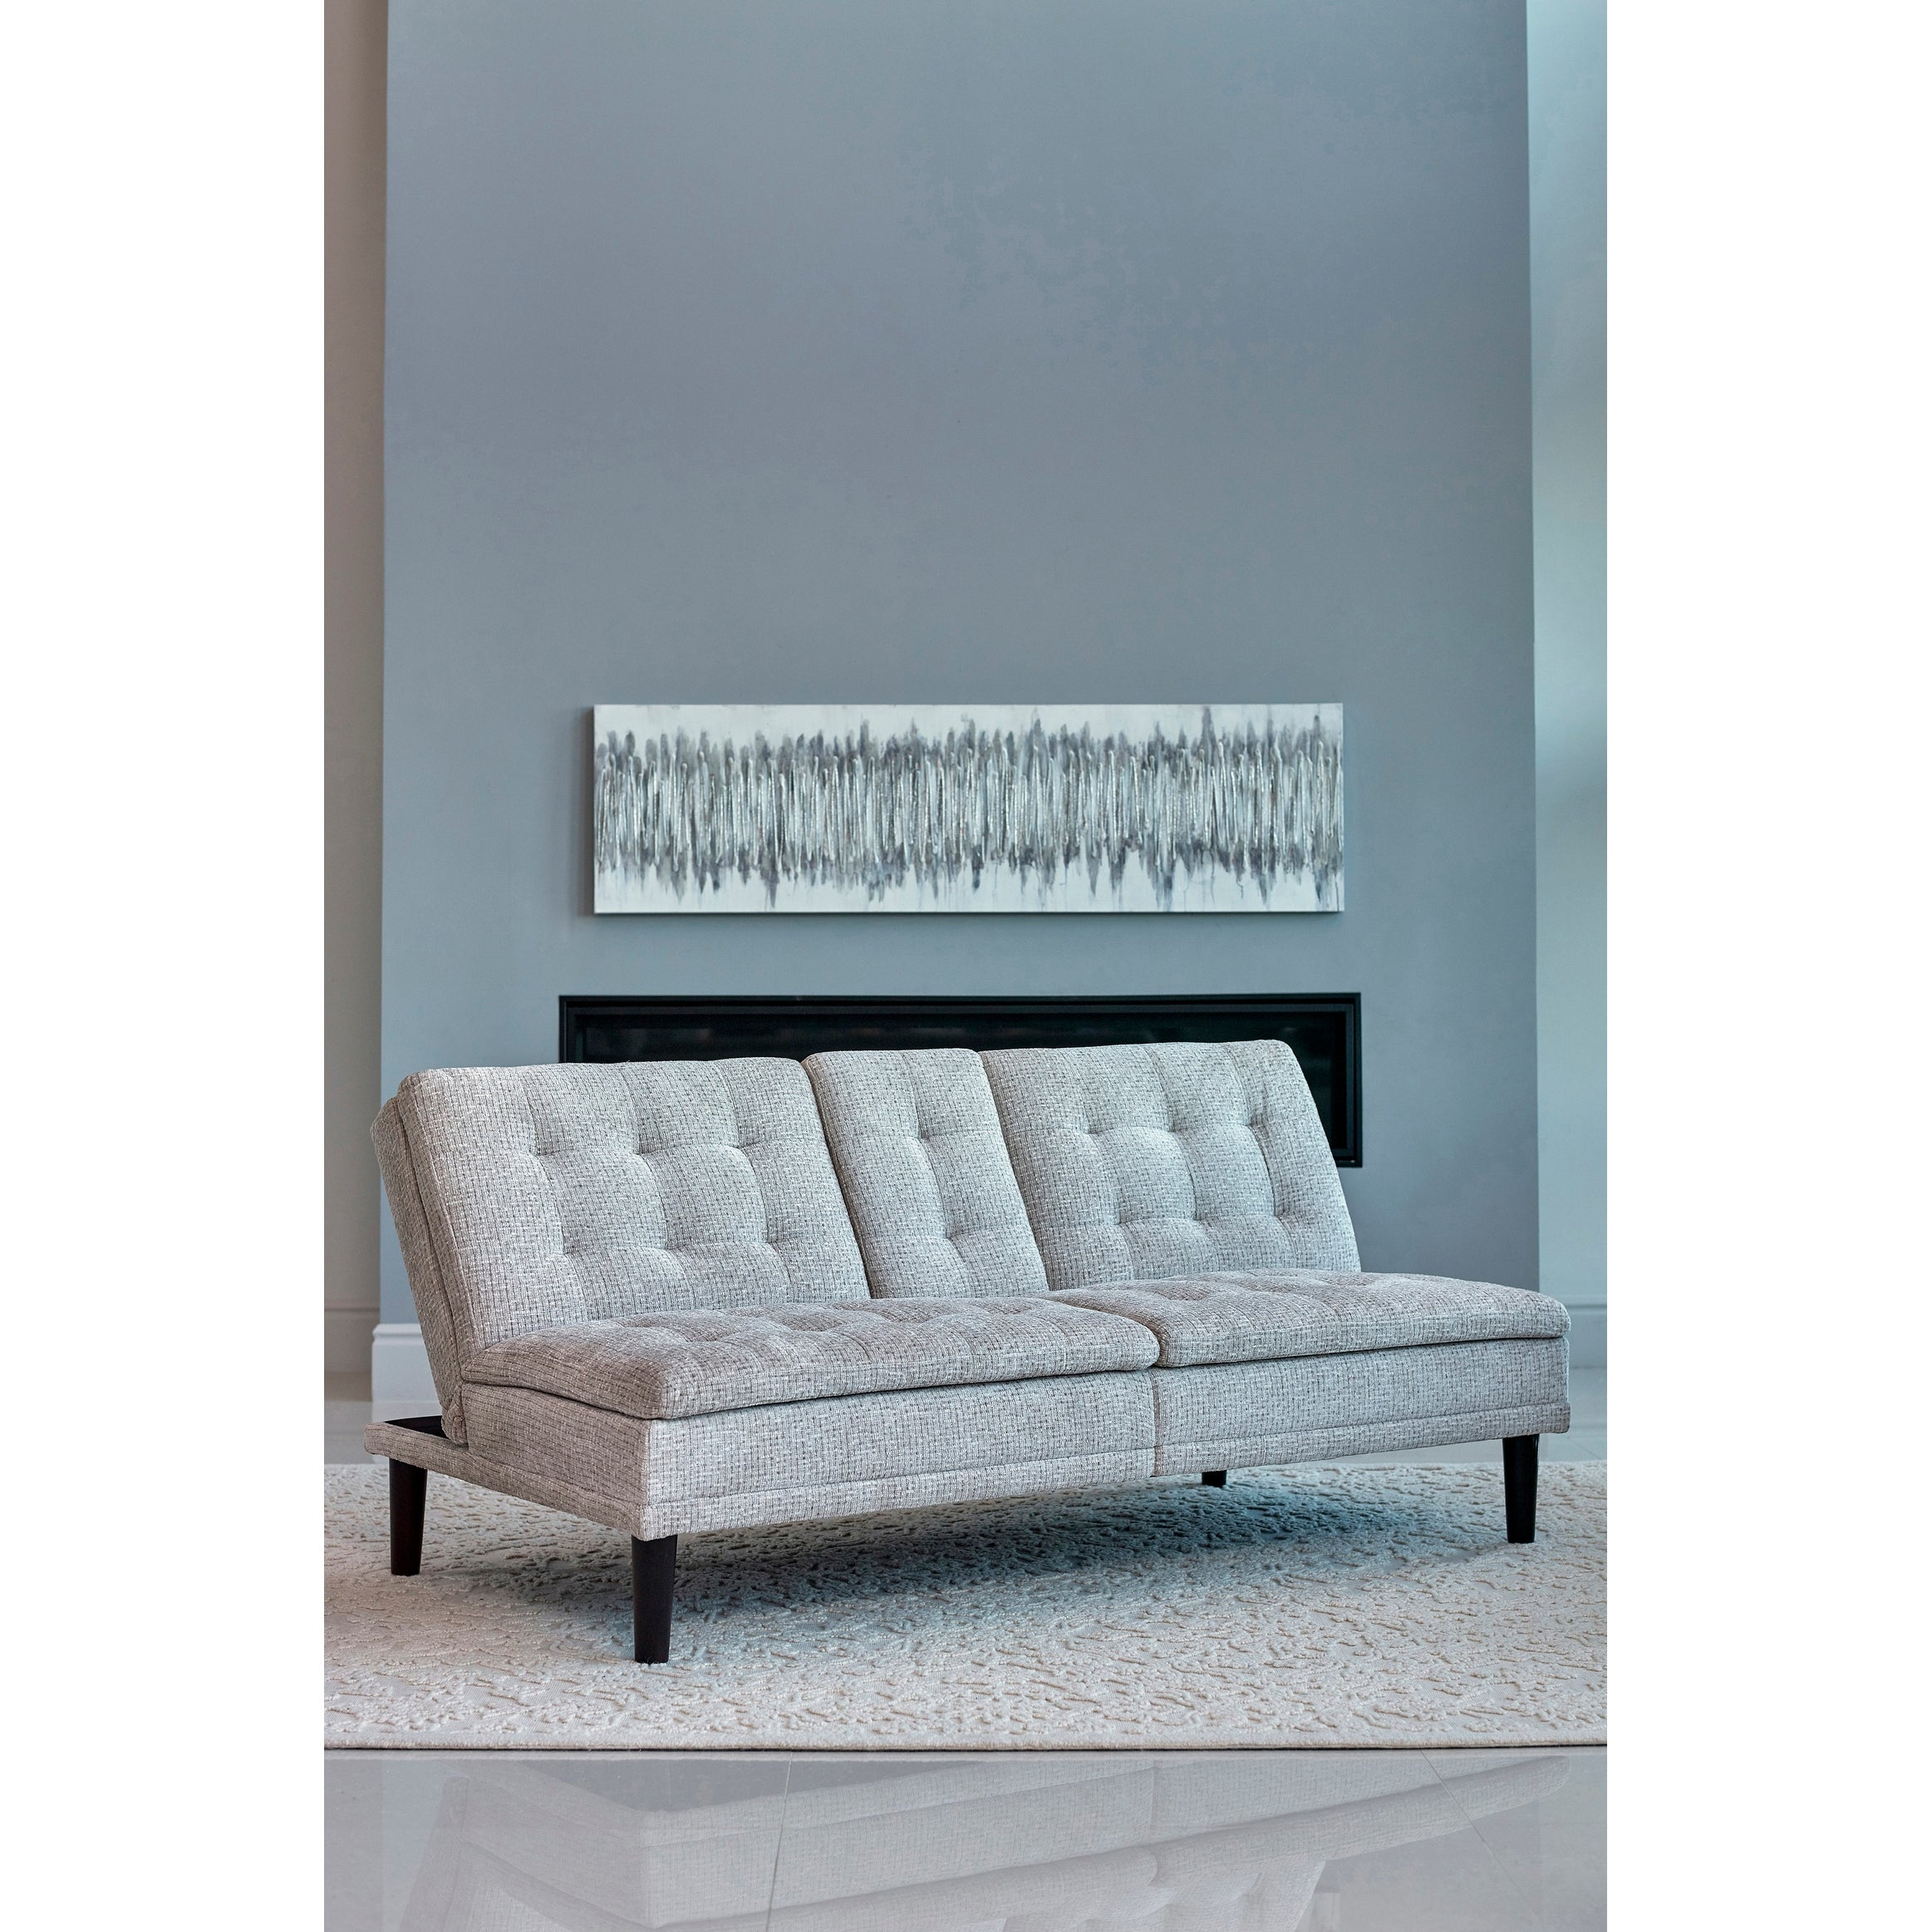 Shop Carson Carrington Odelryd Tufted Sofa Bed With Drop Down Console Overstock 31684165 Beige